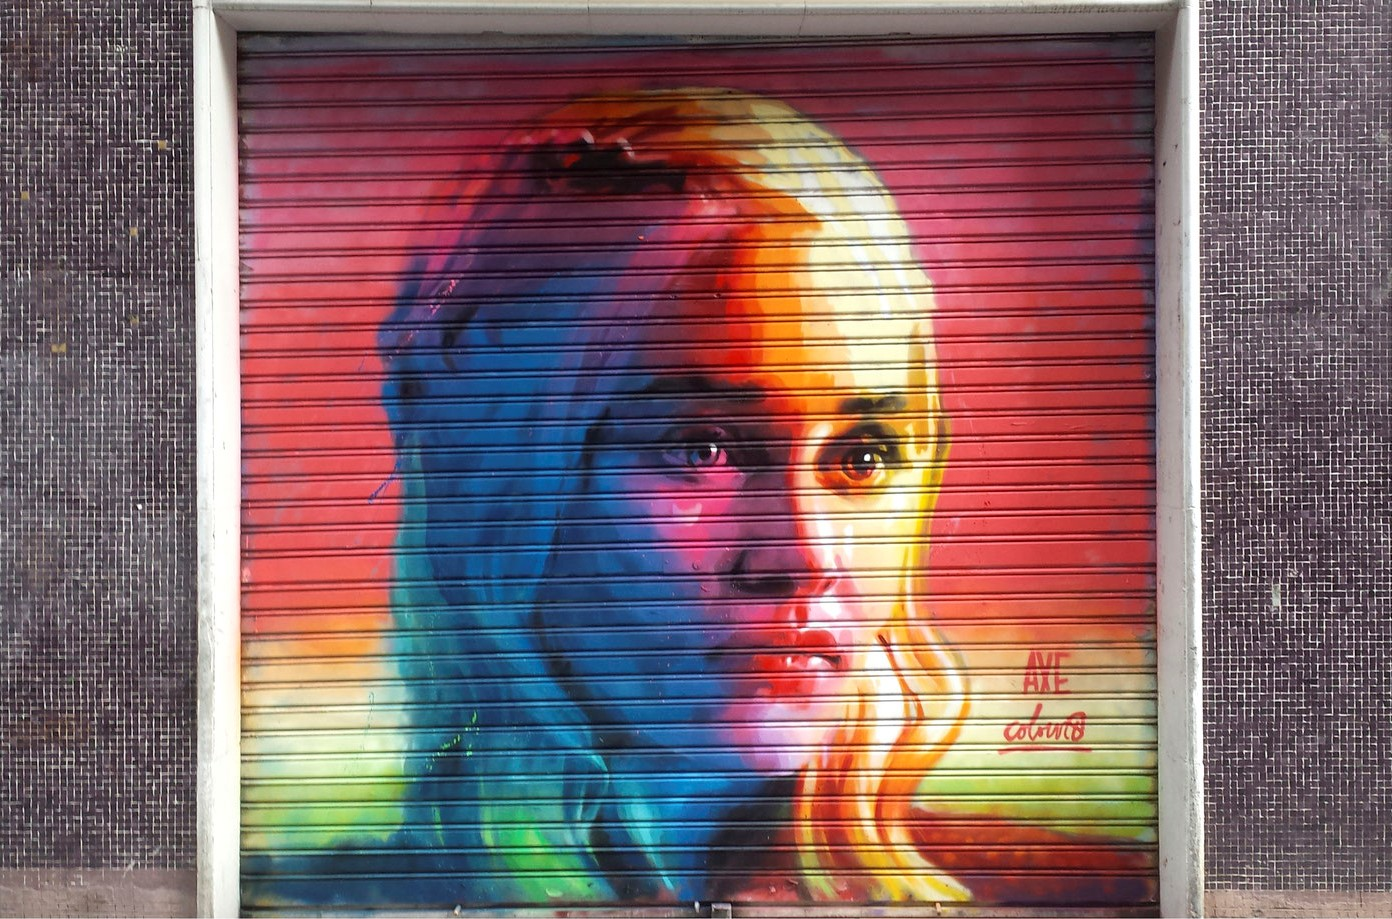 Axe colours Daenerys Targaryen Picture courtesy of Axe Colours Best street art in Barcelona